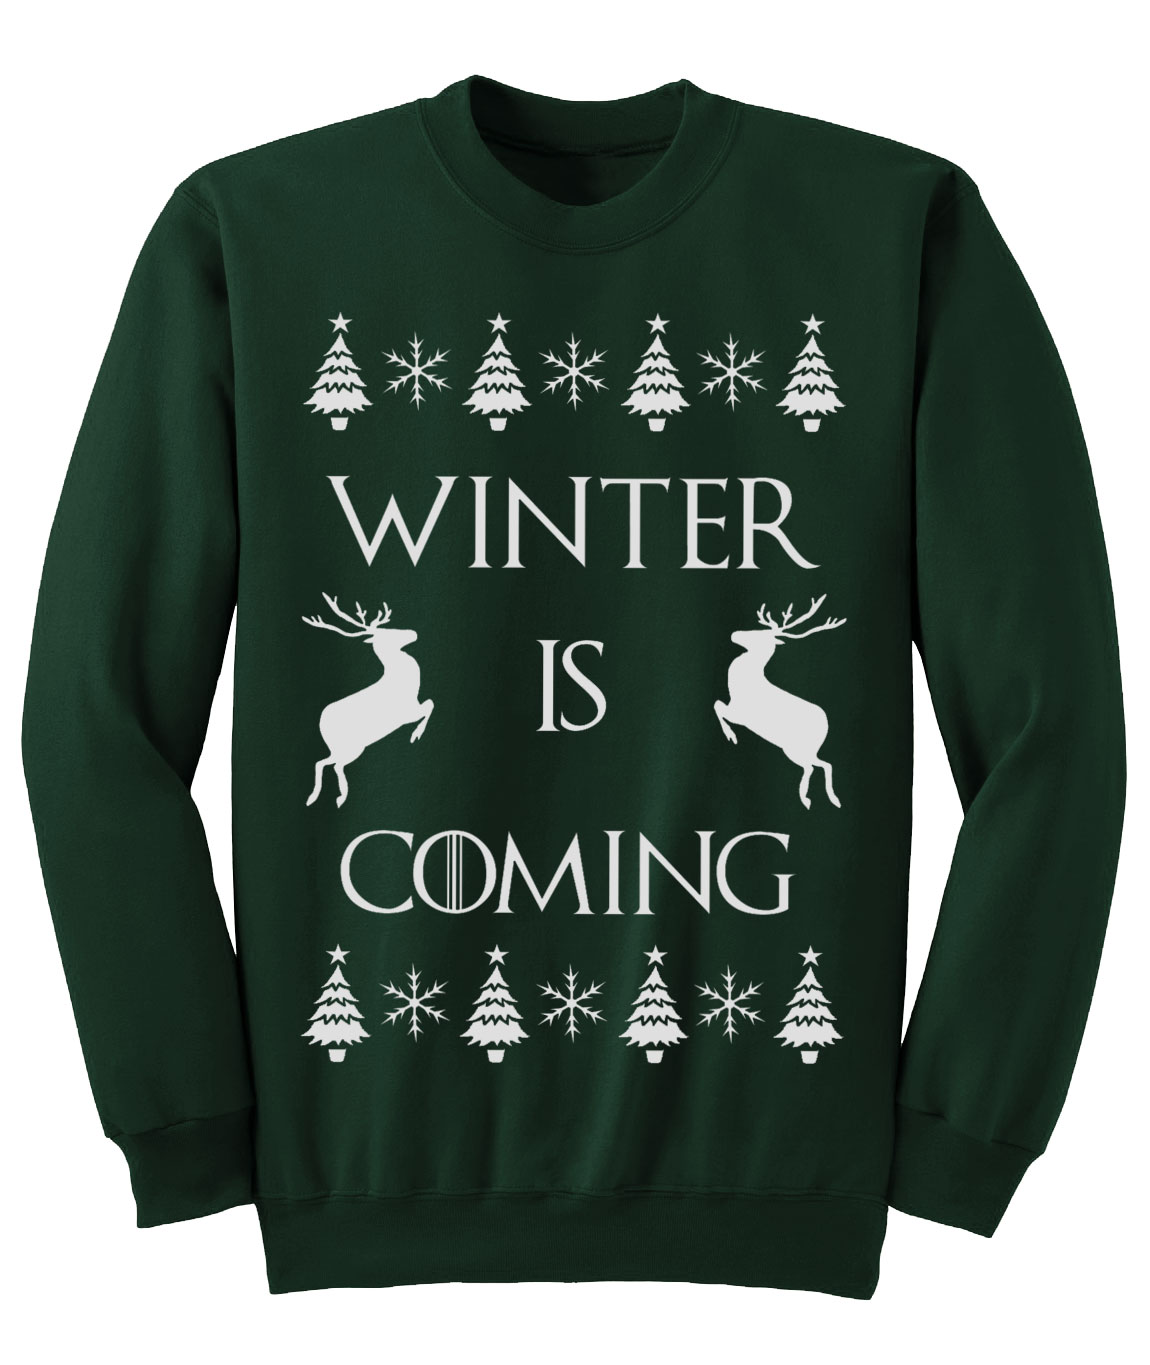 Game Of Thrones Winter Is Coming Christmas Jumper